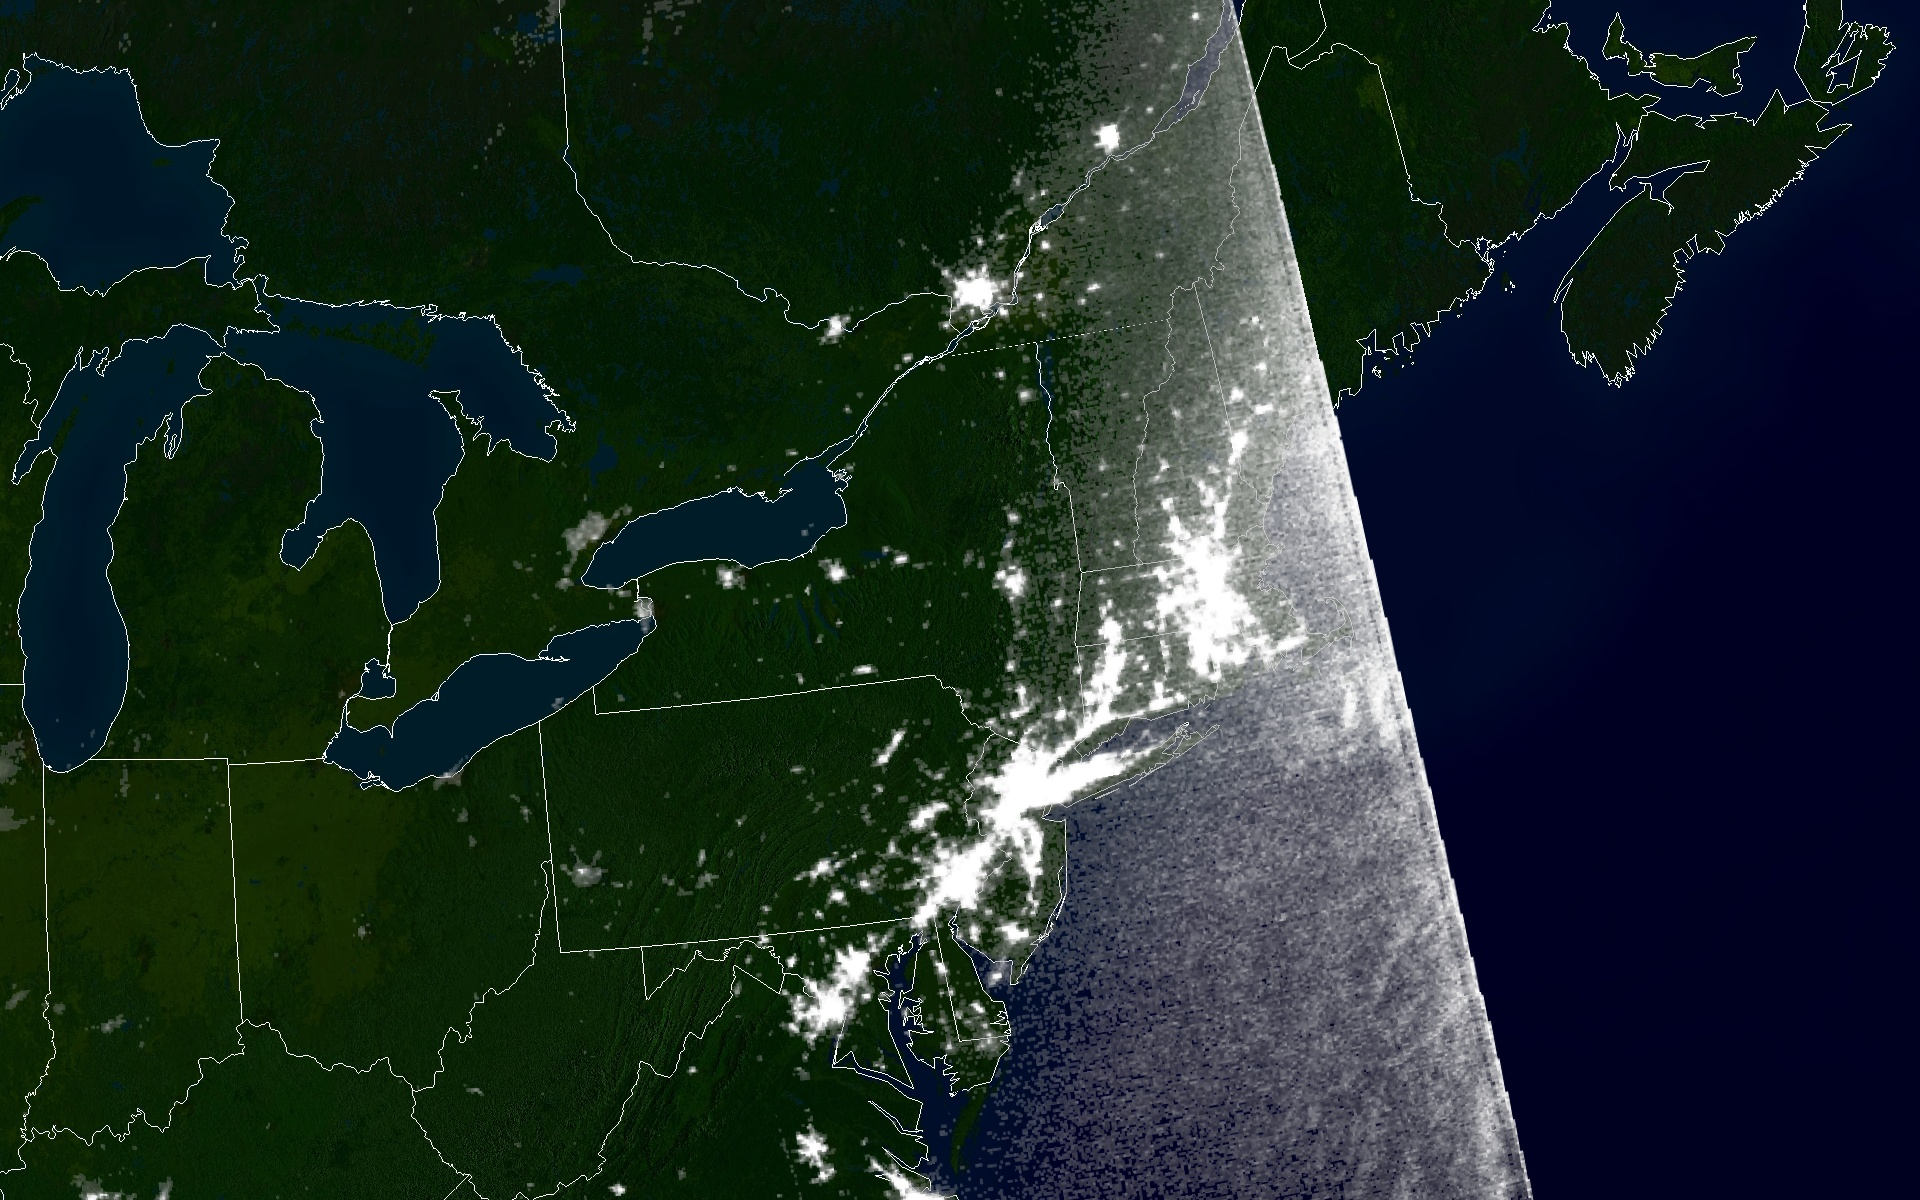 2003_North_American_Blackout_Before.jpg (1920×1200)